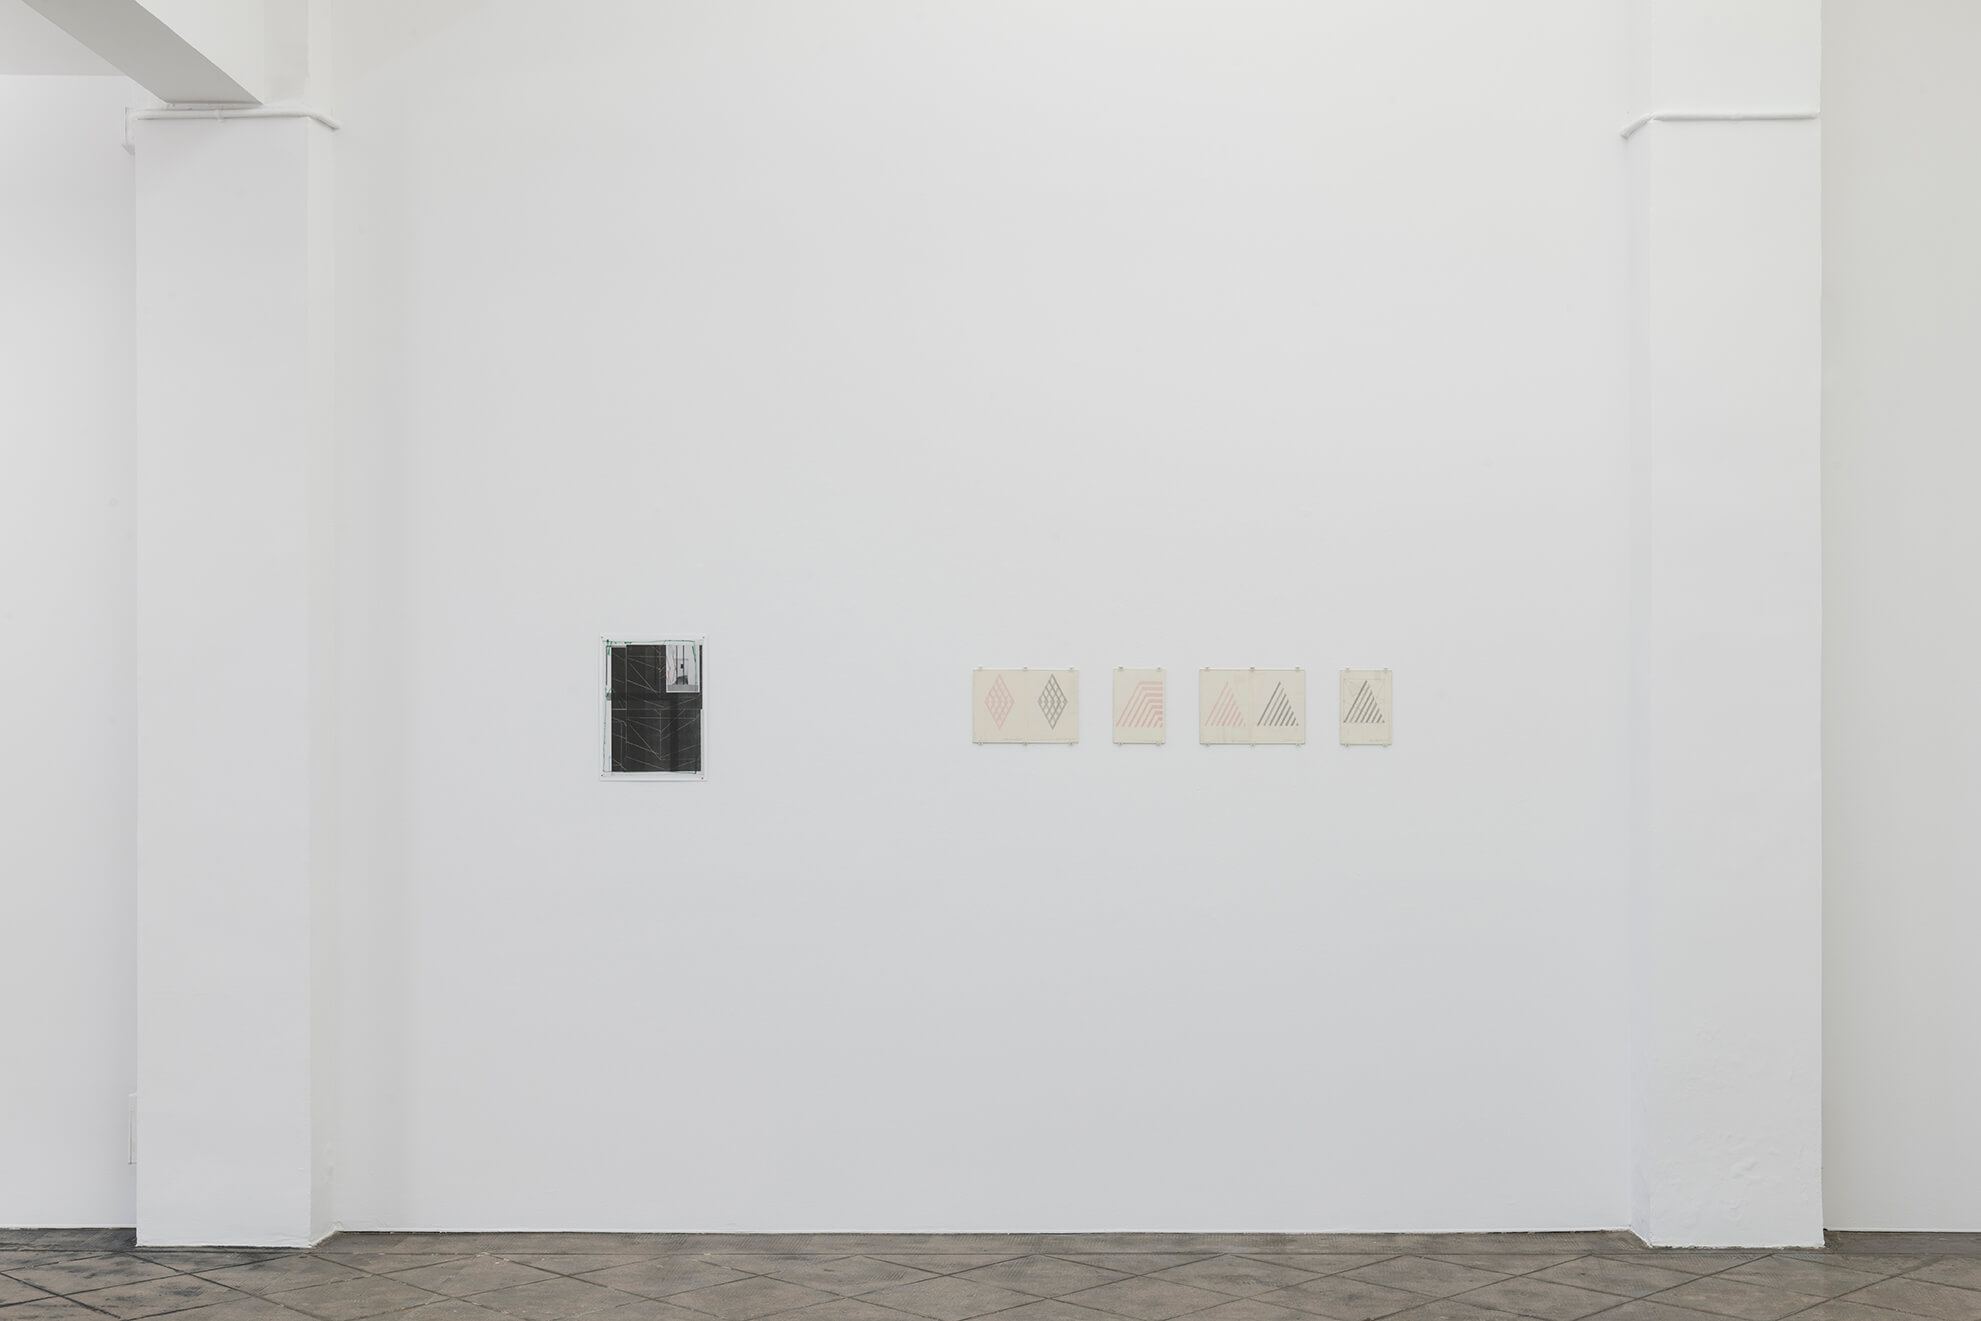 Installation view: Borrowed Spaces and Regular Features, ProjecteSD | Borrowed Space and Regular Features | ProjecteSD